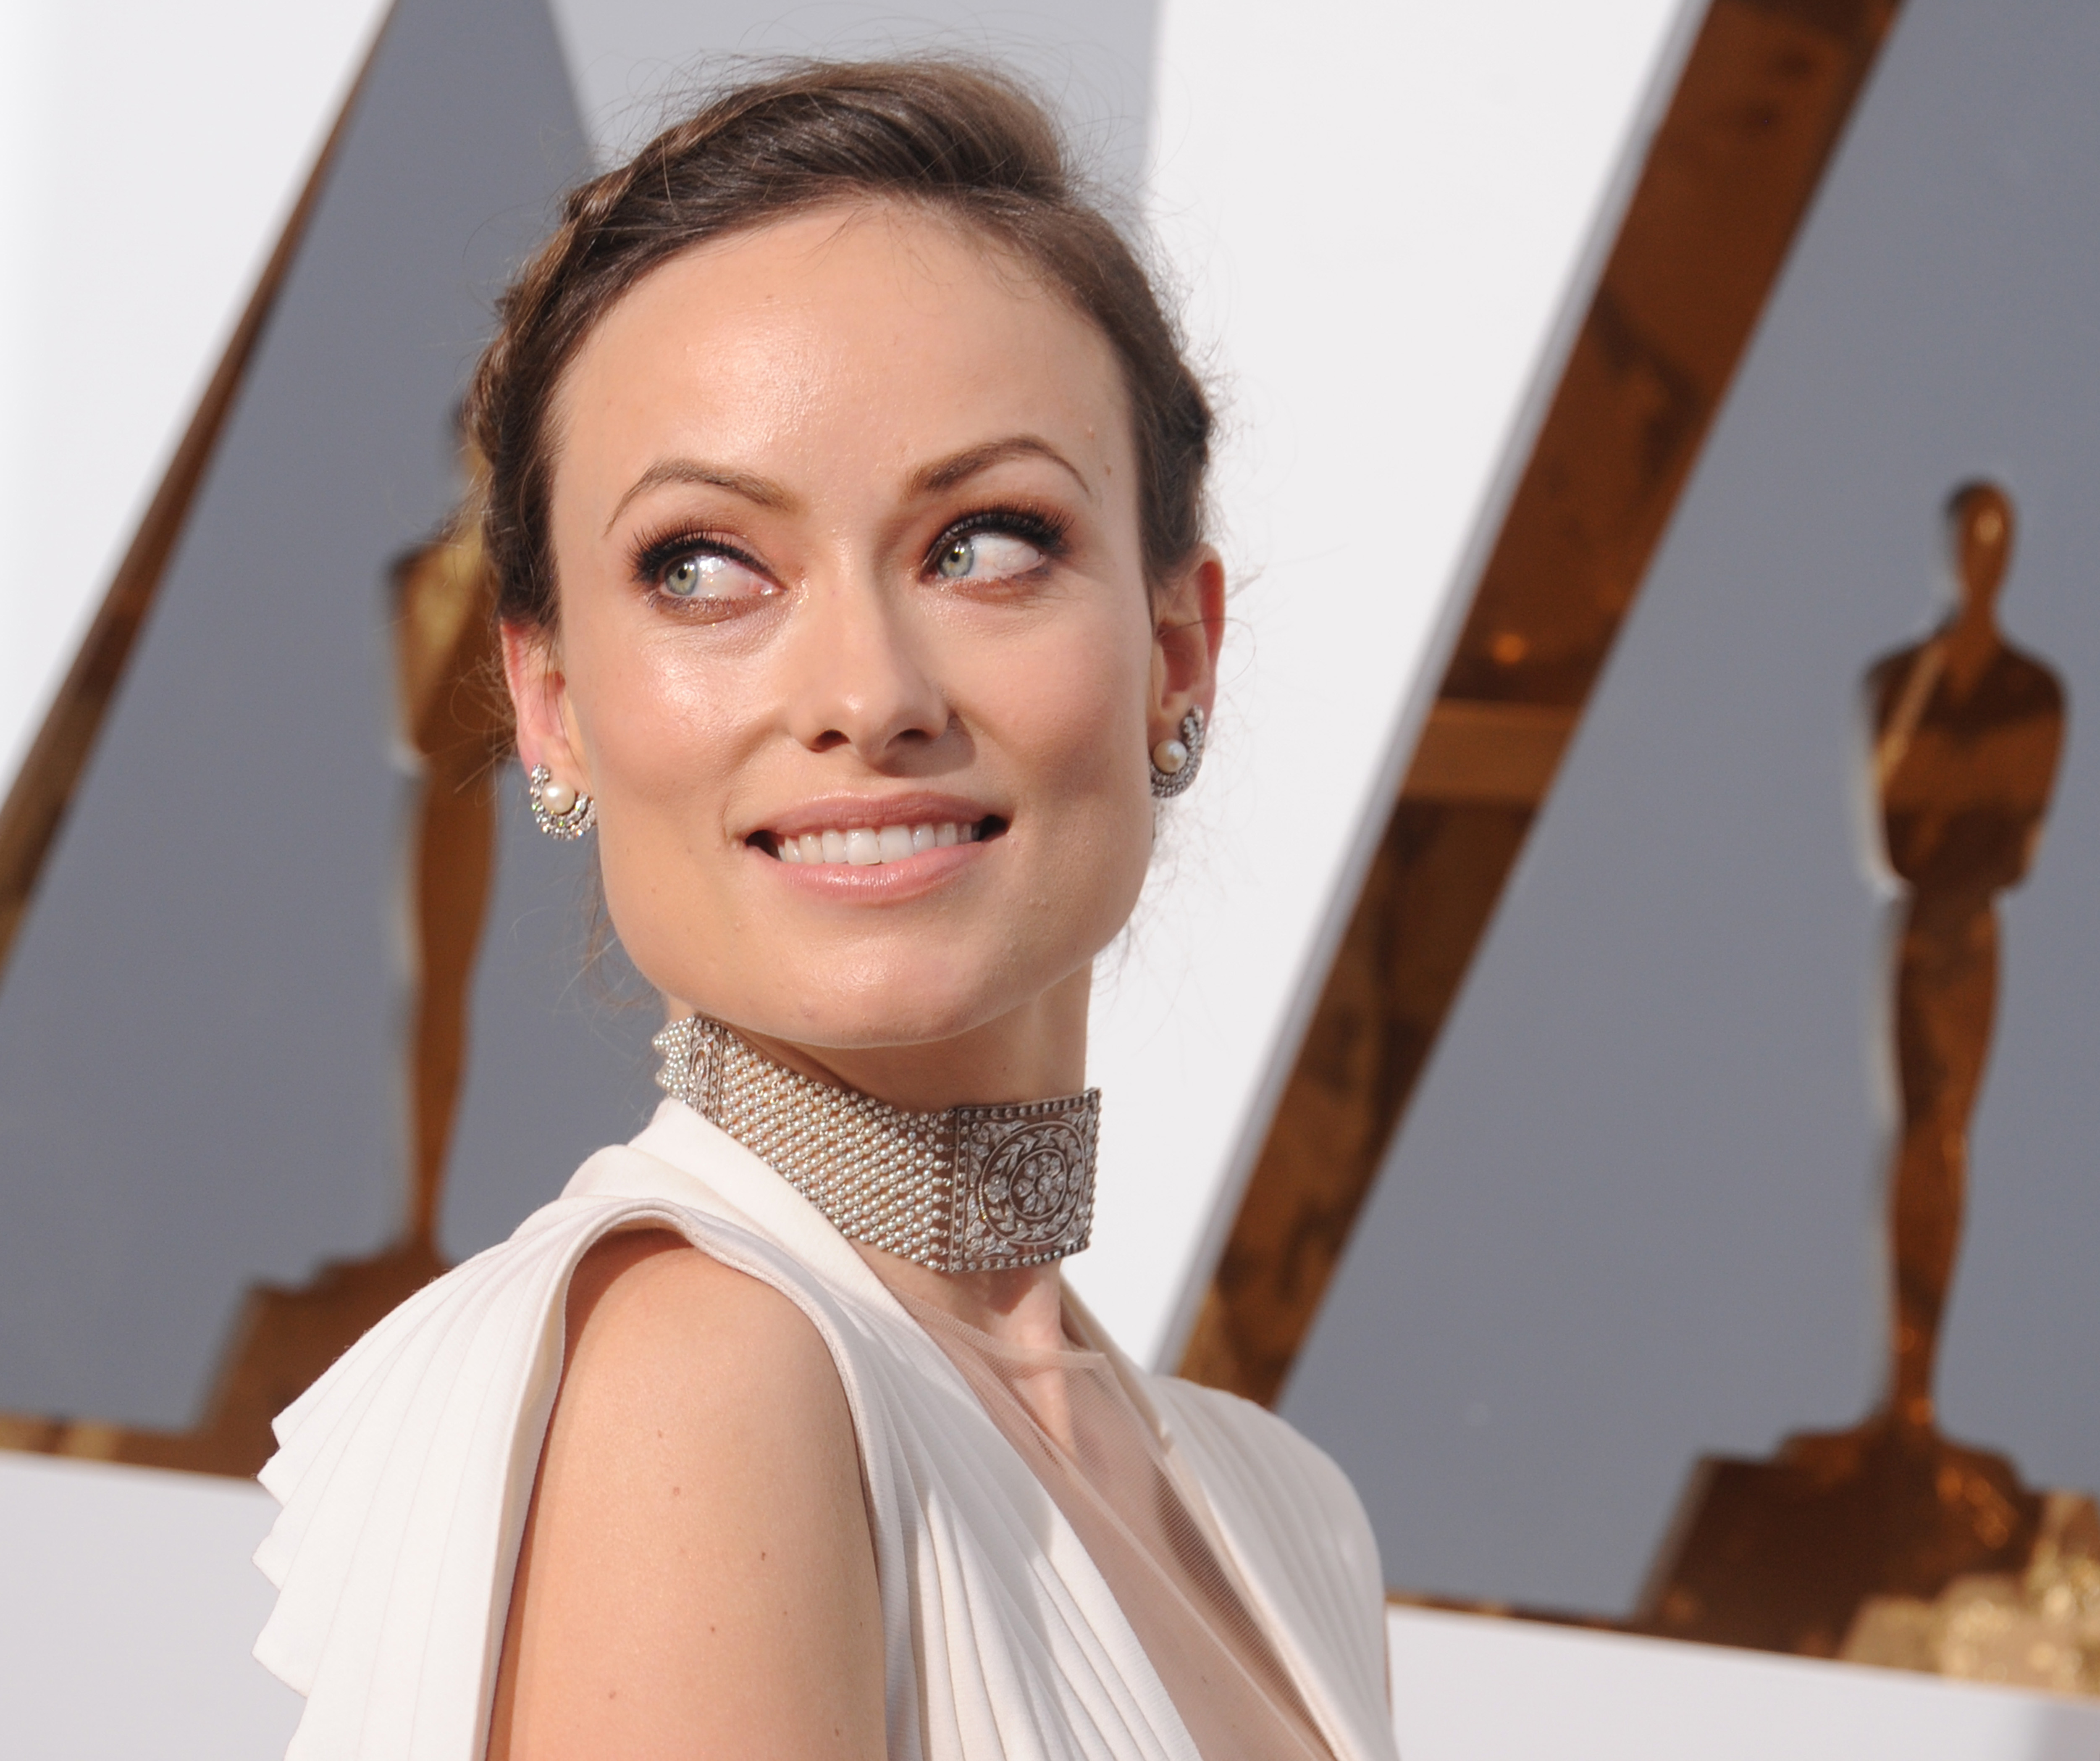 Actress Olivia Wilde arrives at the 88th Annual Academy Awards at Hollywood & Highland Center on February 28, 2016 in Hollywood, California.